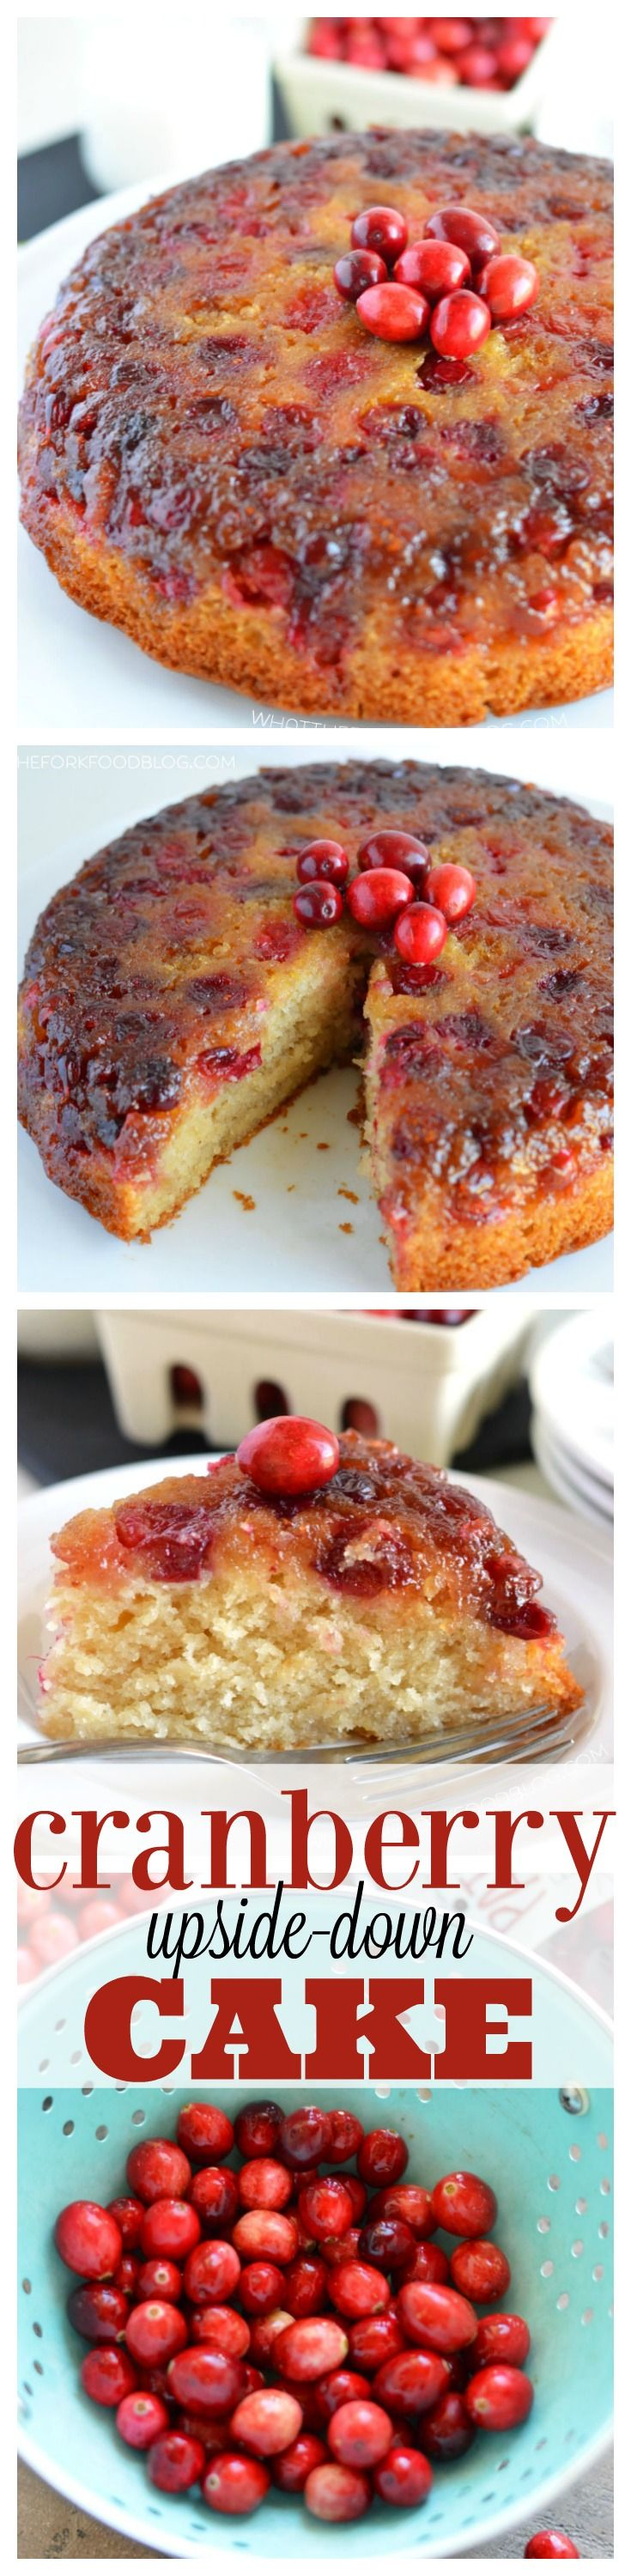 This Cranberry Upside-Down cake is the perfect combination of sweet and tart. Fresh cranberries are the star of this delicious dessert. Serve it for Thanksgiving, Christmas, or any time during cranberry season! Easy dessert recipe from @whattheforkblog | whattheforkfoodblog | gluten free desserts | cranberry recipes | recipes with fresh cranberries | how to bake with cranberries | upside-down cake recipes | how to make an upside-down cake | gluten free cake | easy cake recipes